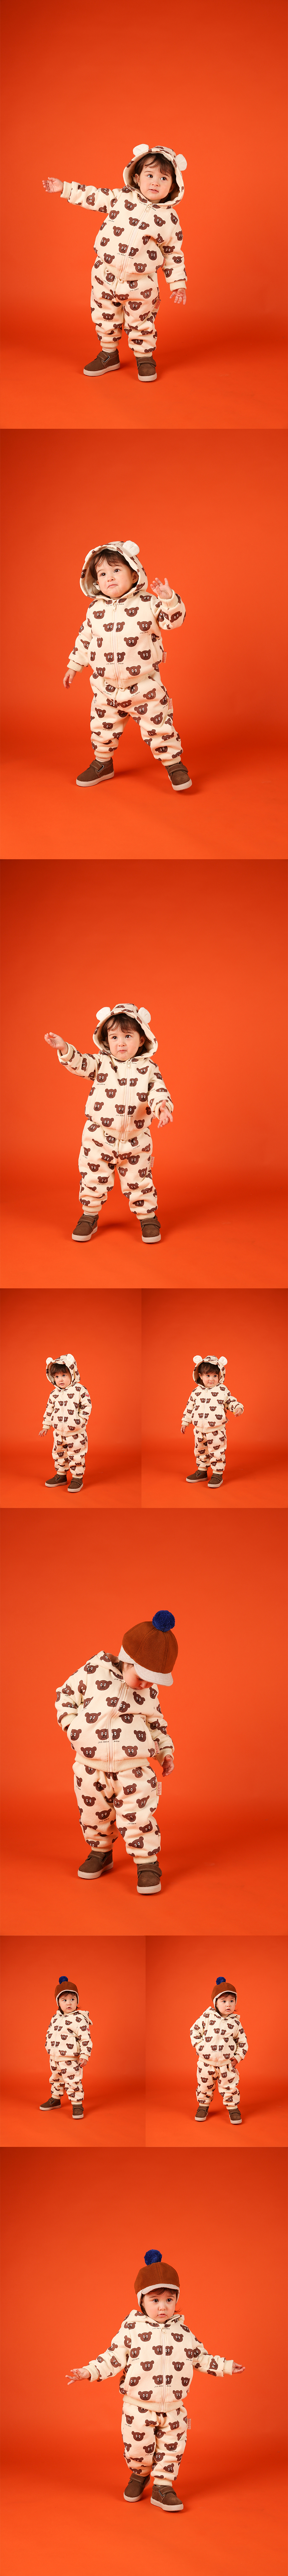 Multi willy bear baby boa fur zip up jacket 상세 이미지